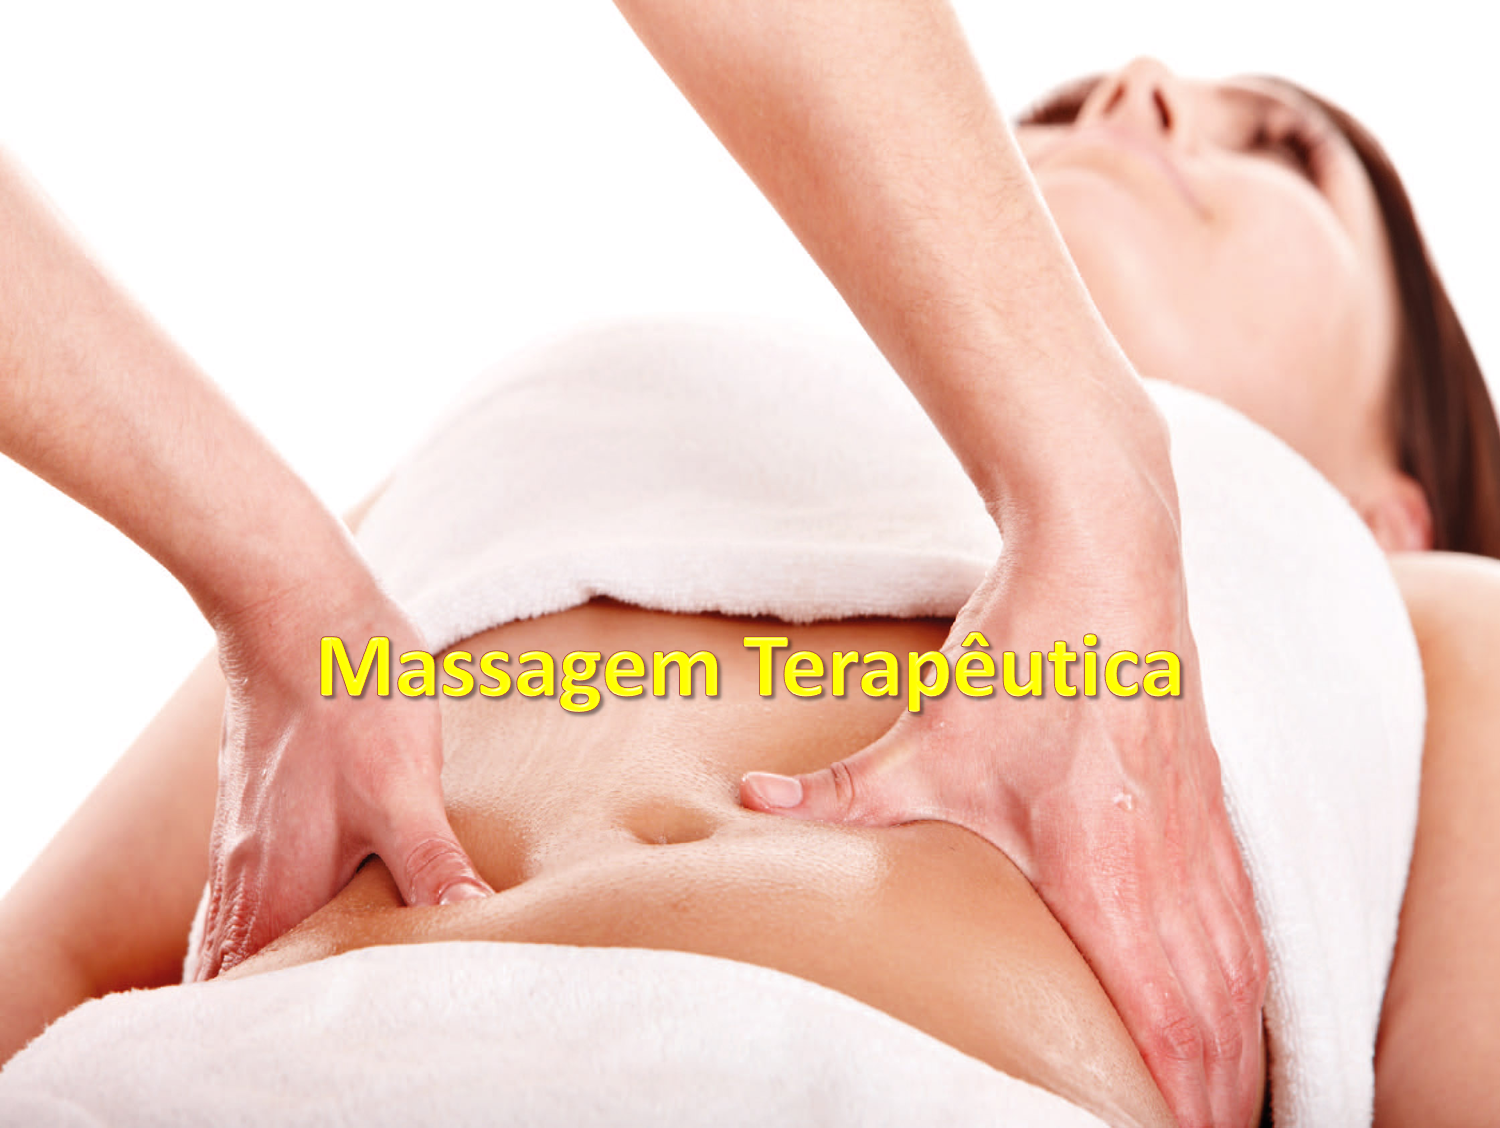 Massagem Terapeutica